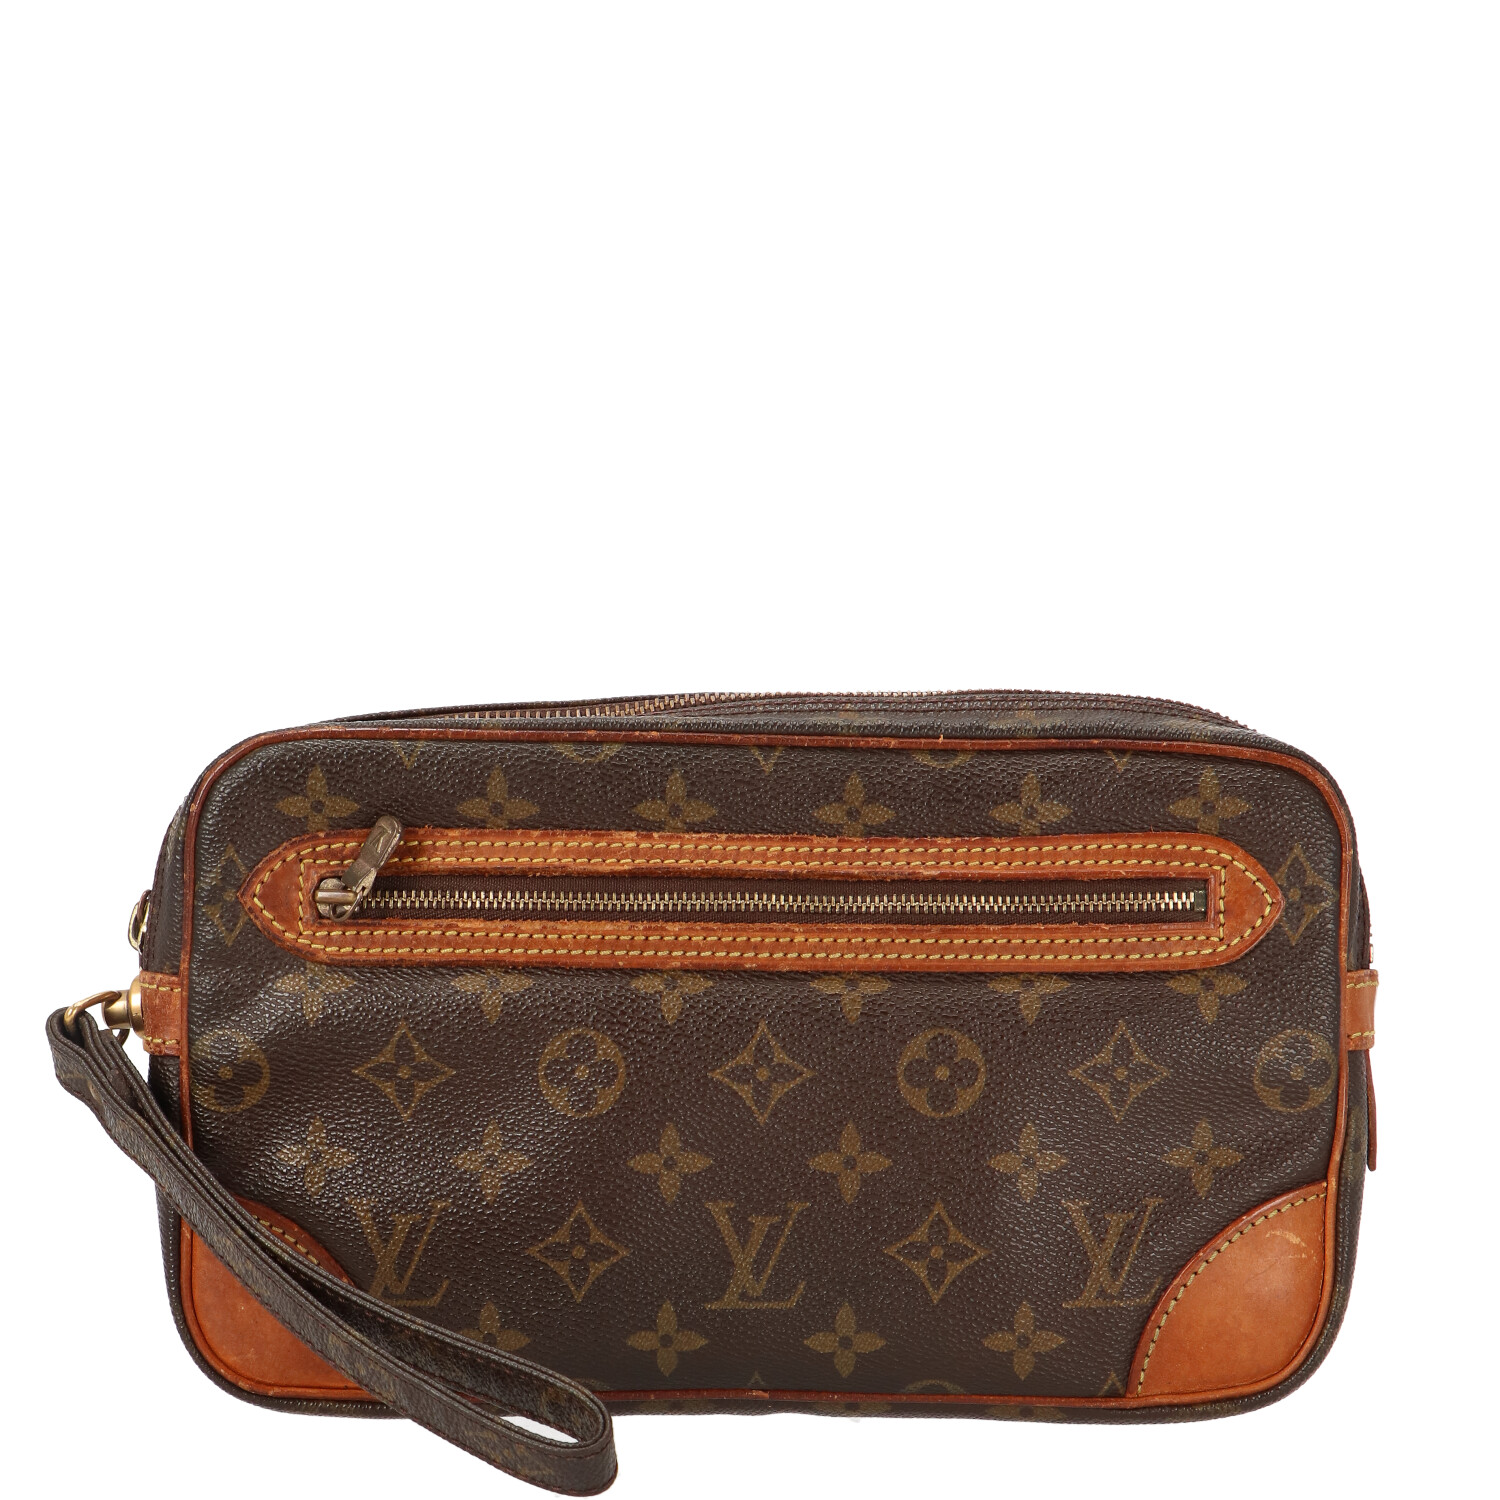 Monogram Canvas Marly Dragonne Clutch